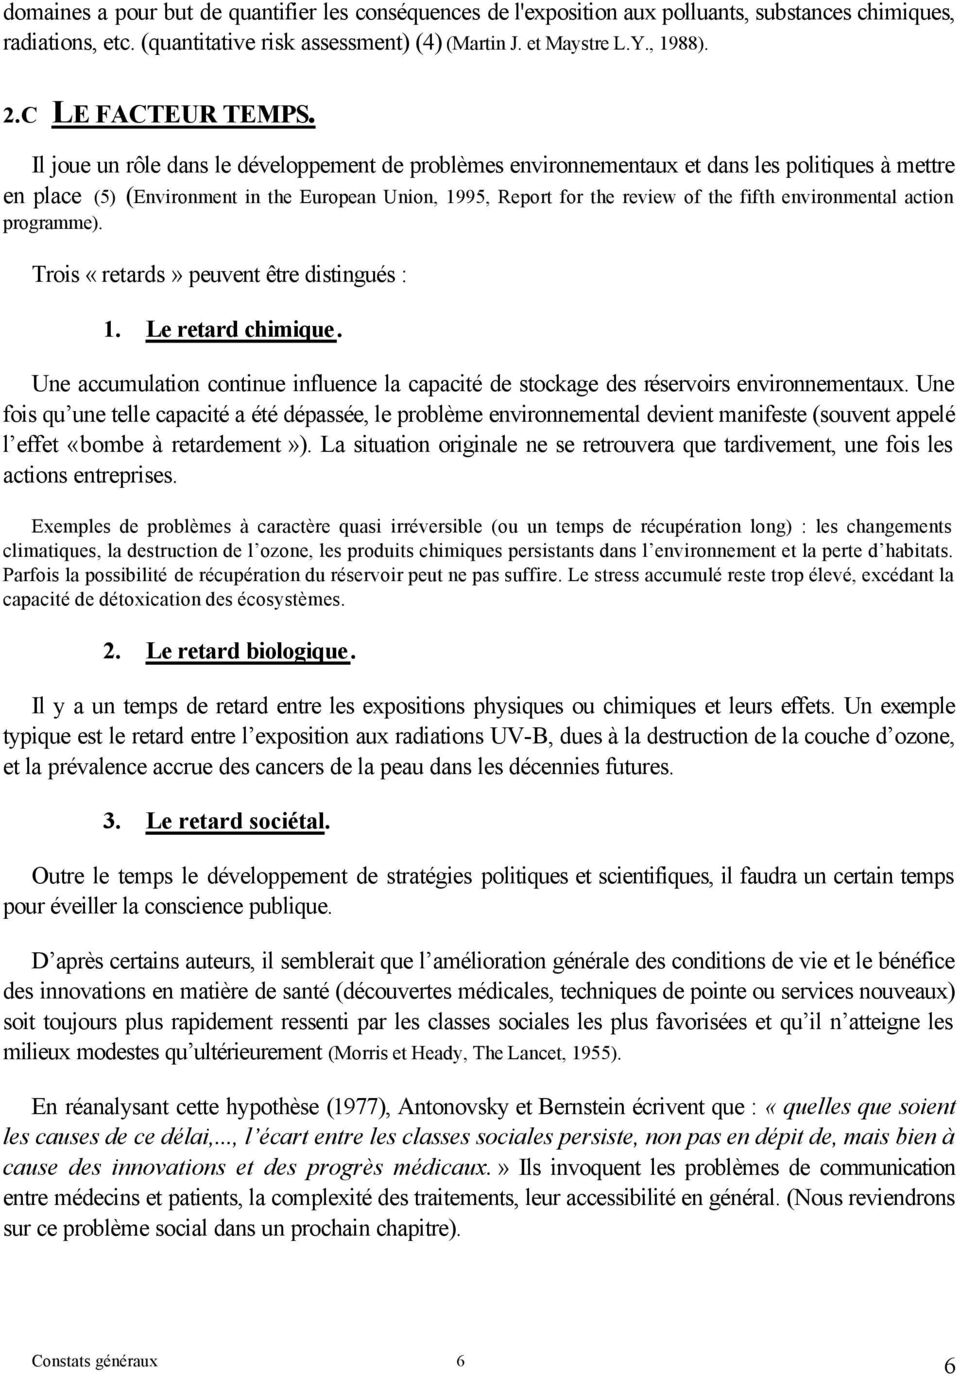 Il joue un rôle dans le développement de problèmes environnementaux et dans les politiques à mettre en place (5) (Environment in the European Union, 1995, Report for the review of the fifth